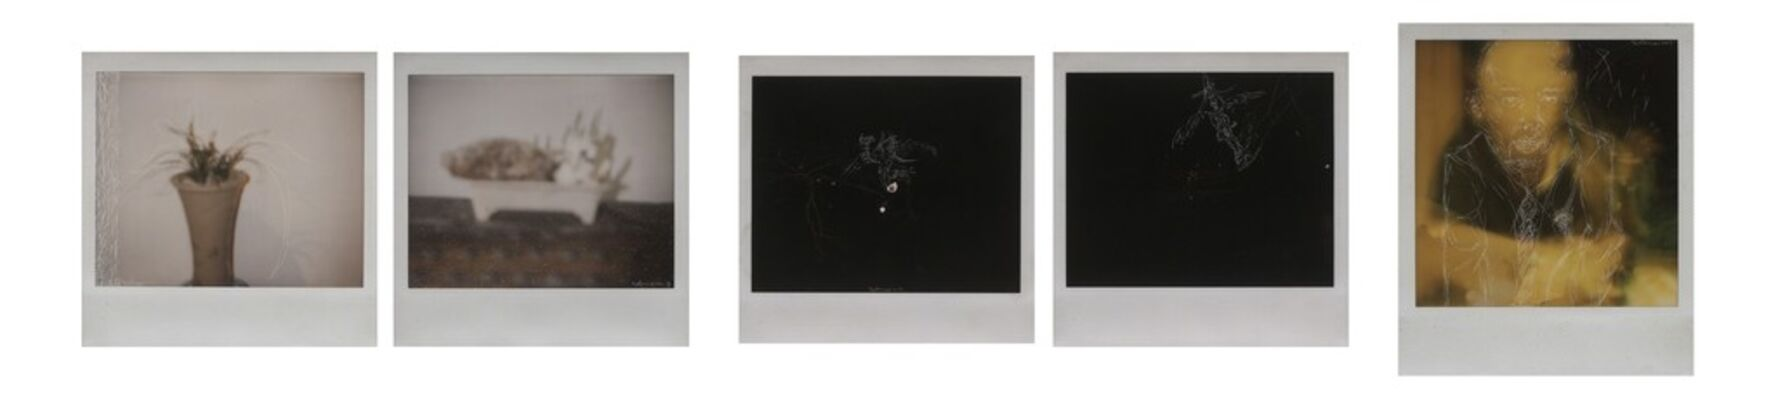 Selection of Photography Art by Chinese Contemporary Artists, installation view